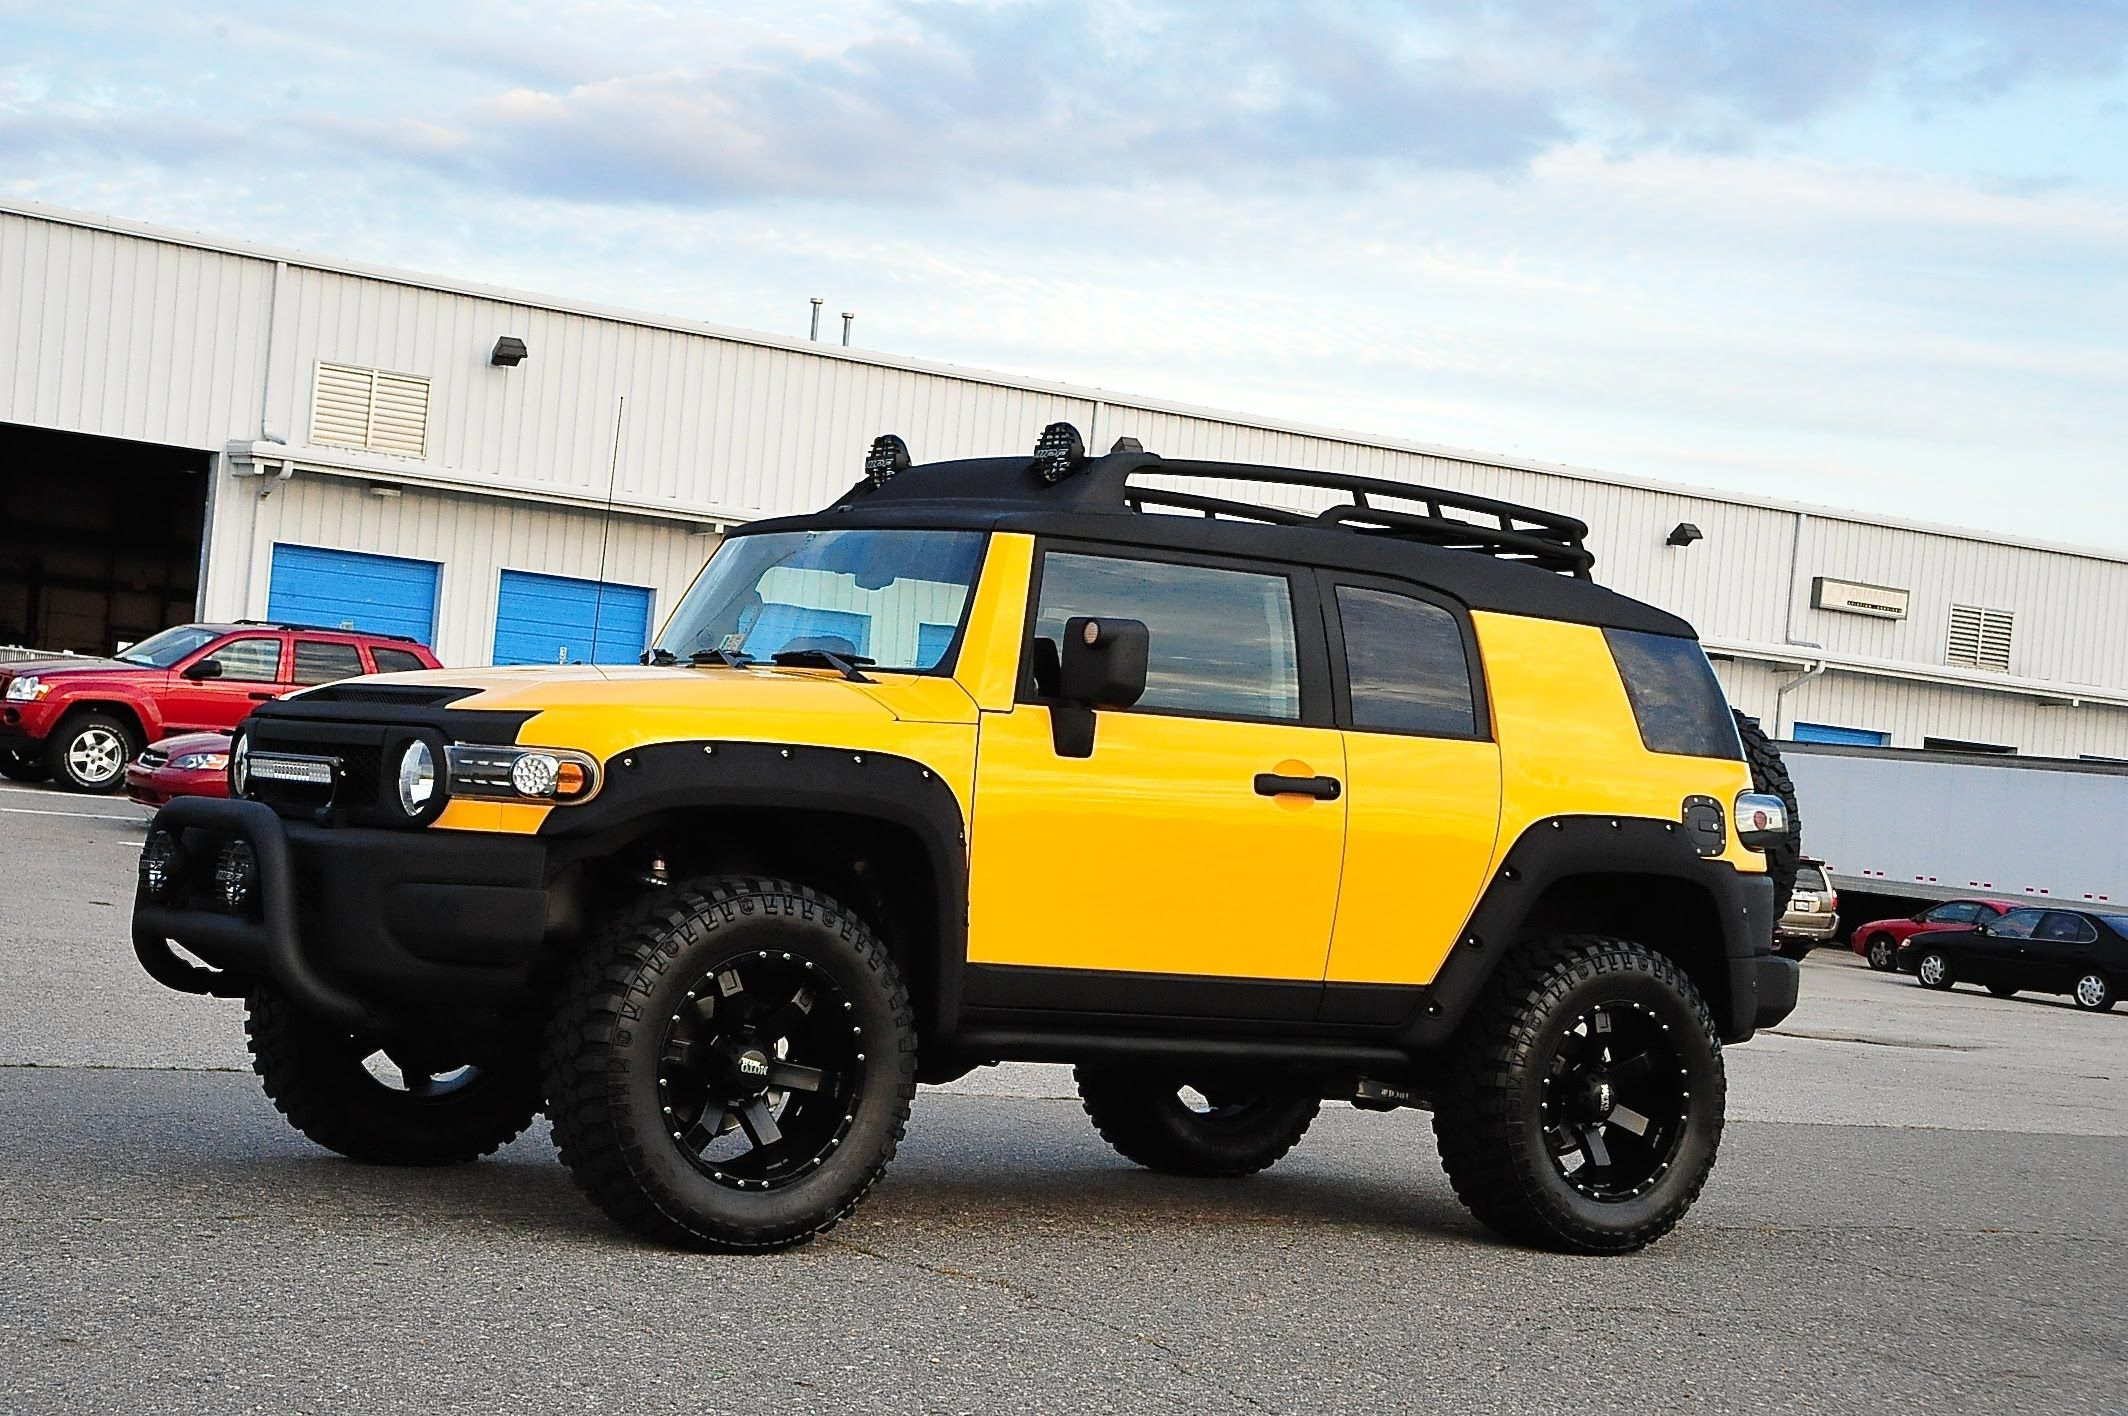 Davis Autosports Toyota Fj Cruiser Lifted Icon Built For Sale Fj Cruiser Toyota Fj Cruiser Toyota Cruiser